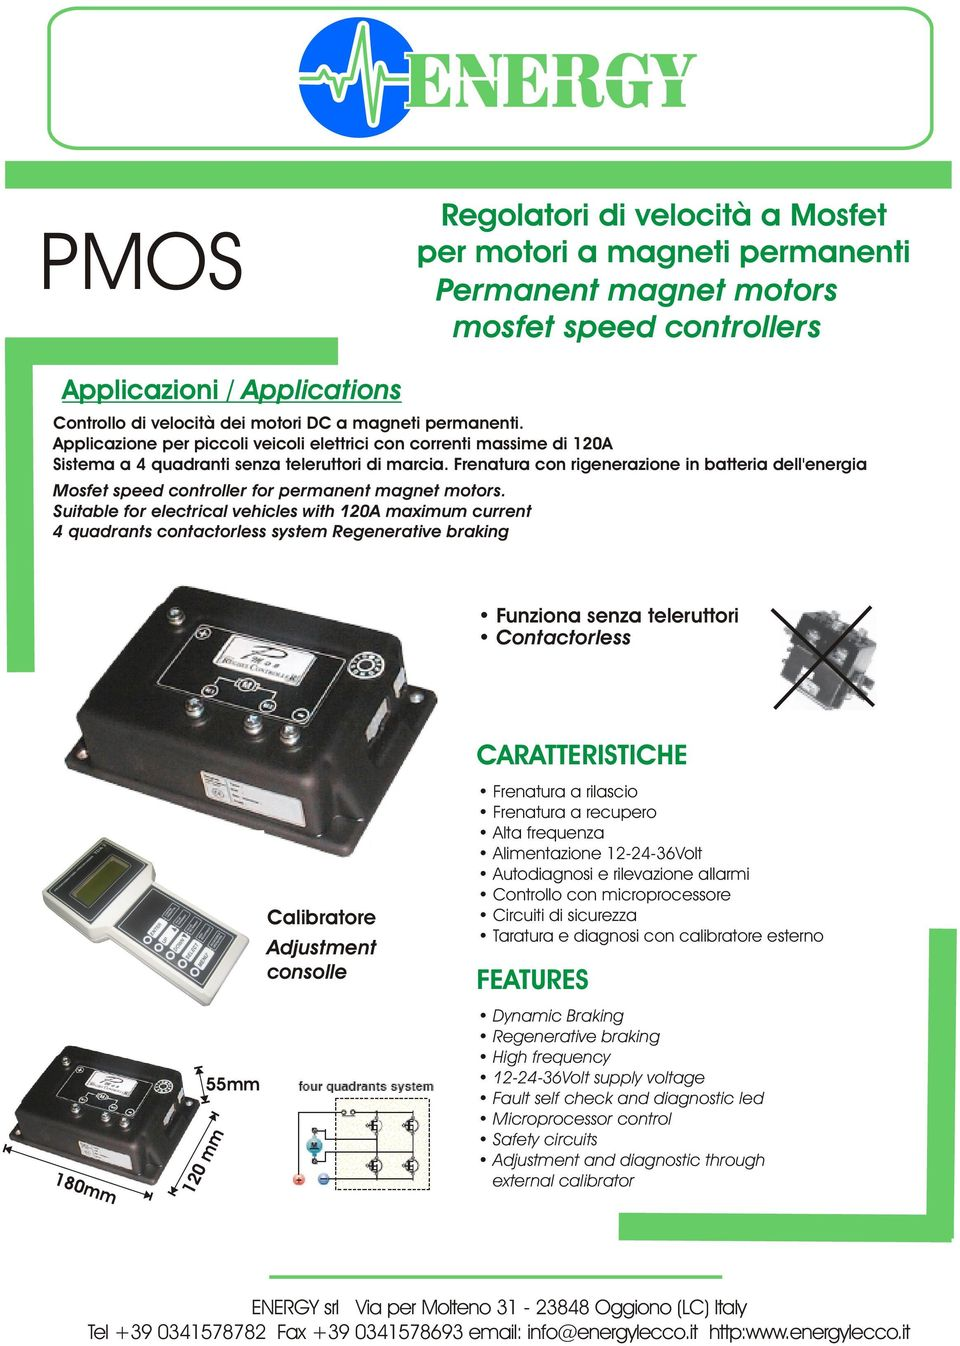 Frenatura con rigenerazione in batteria dell'energia Mosfet speed controller for permanent magnet motors.